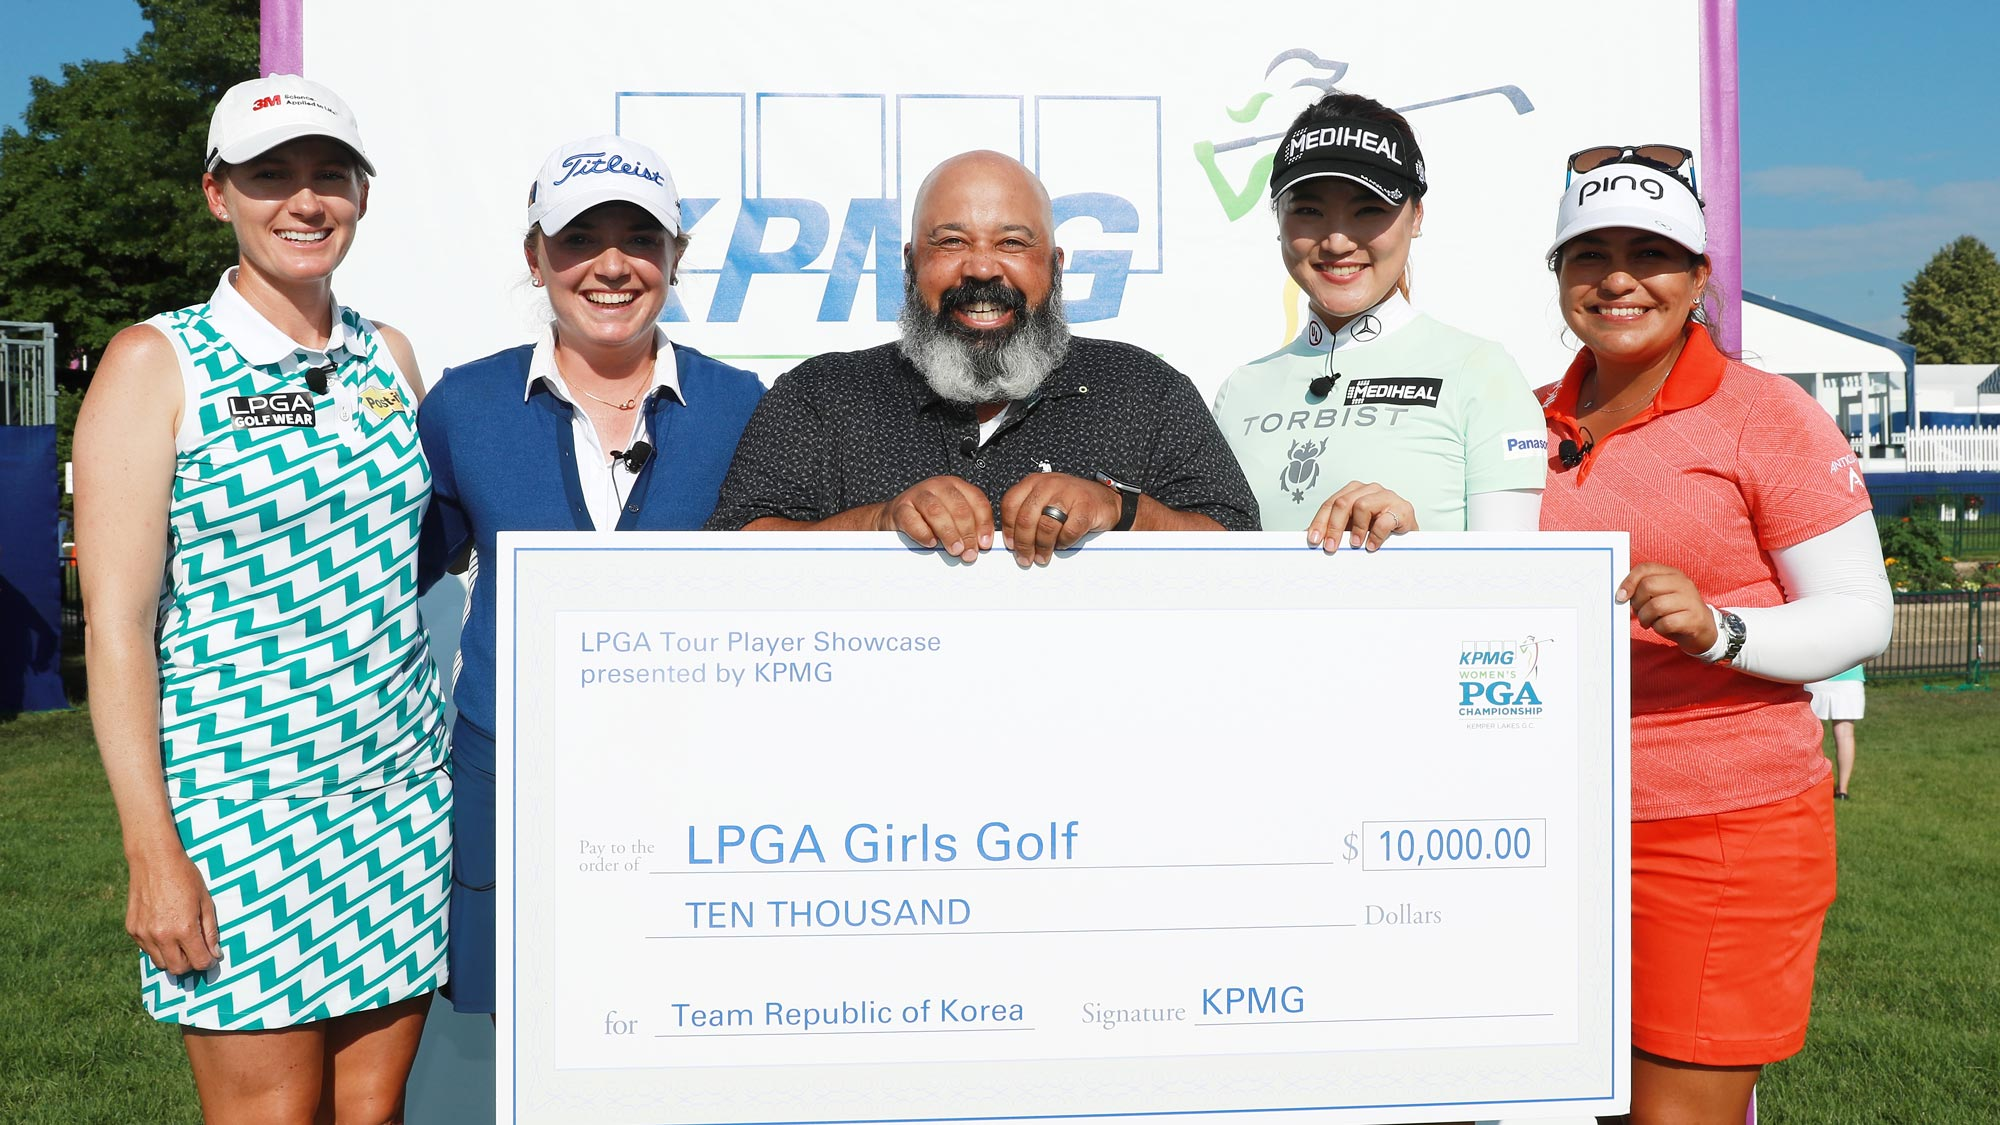 (Left to right) Sarah Jane Smith, Bronte Law, ESPN's Michael Collins, So Yeon Ryu and Lizette Salas pose after the KPMG Skills Challenge